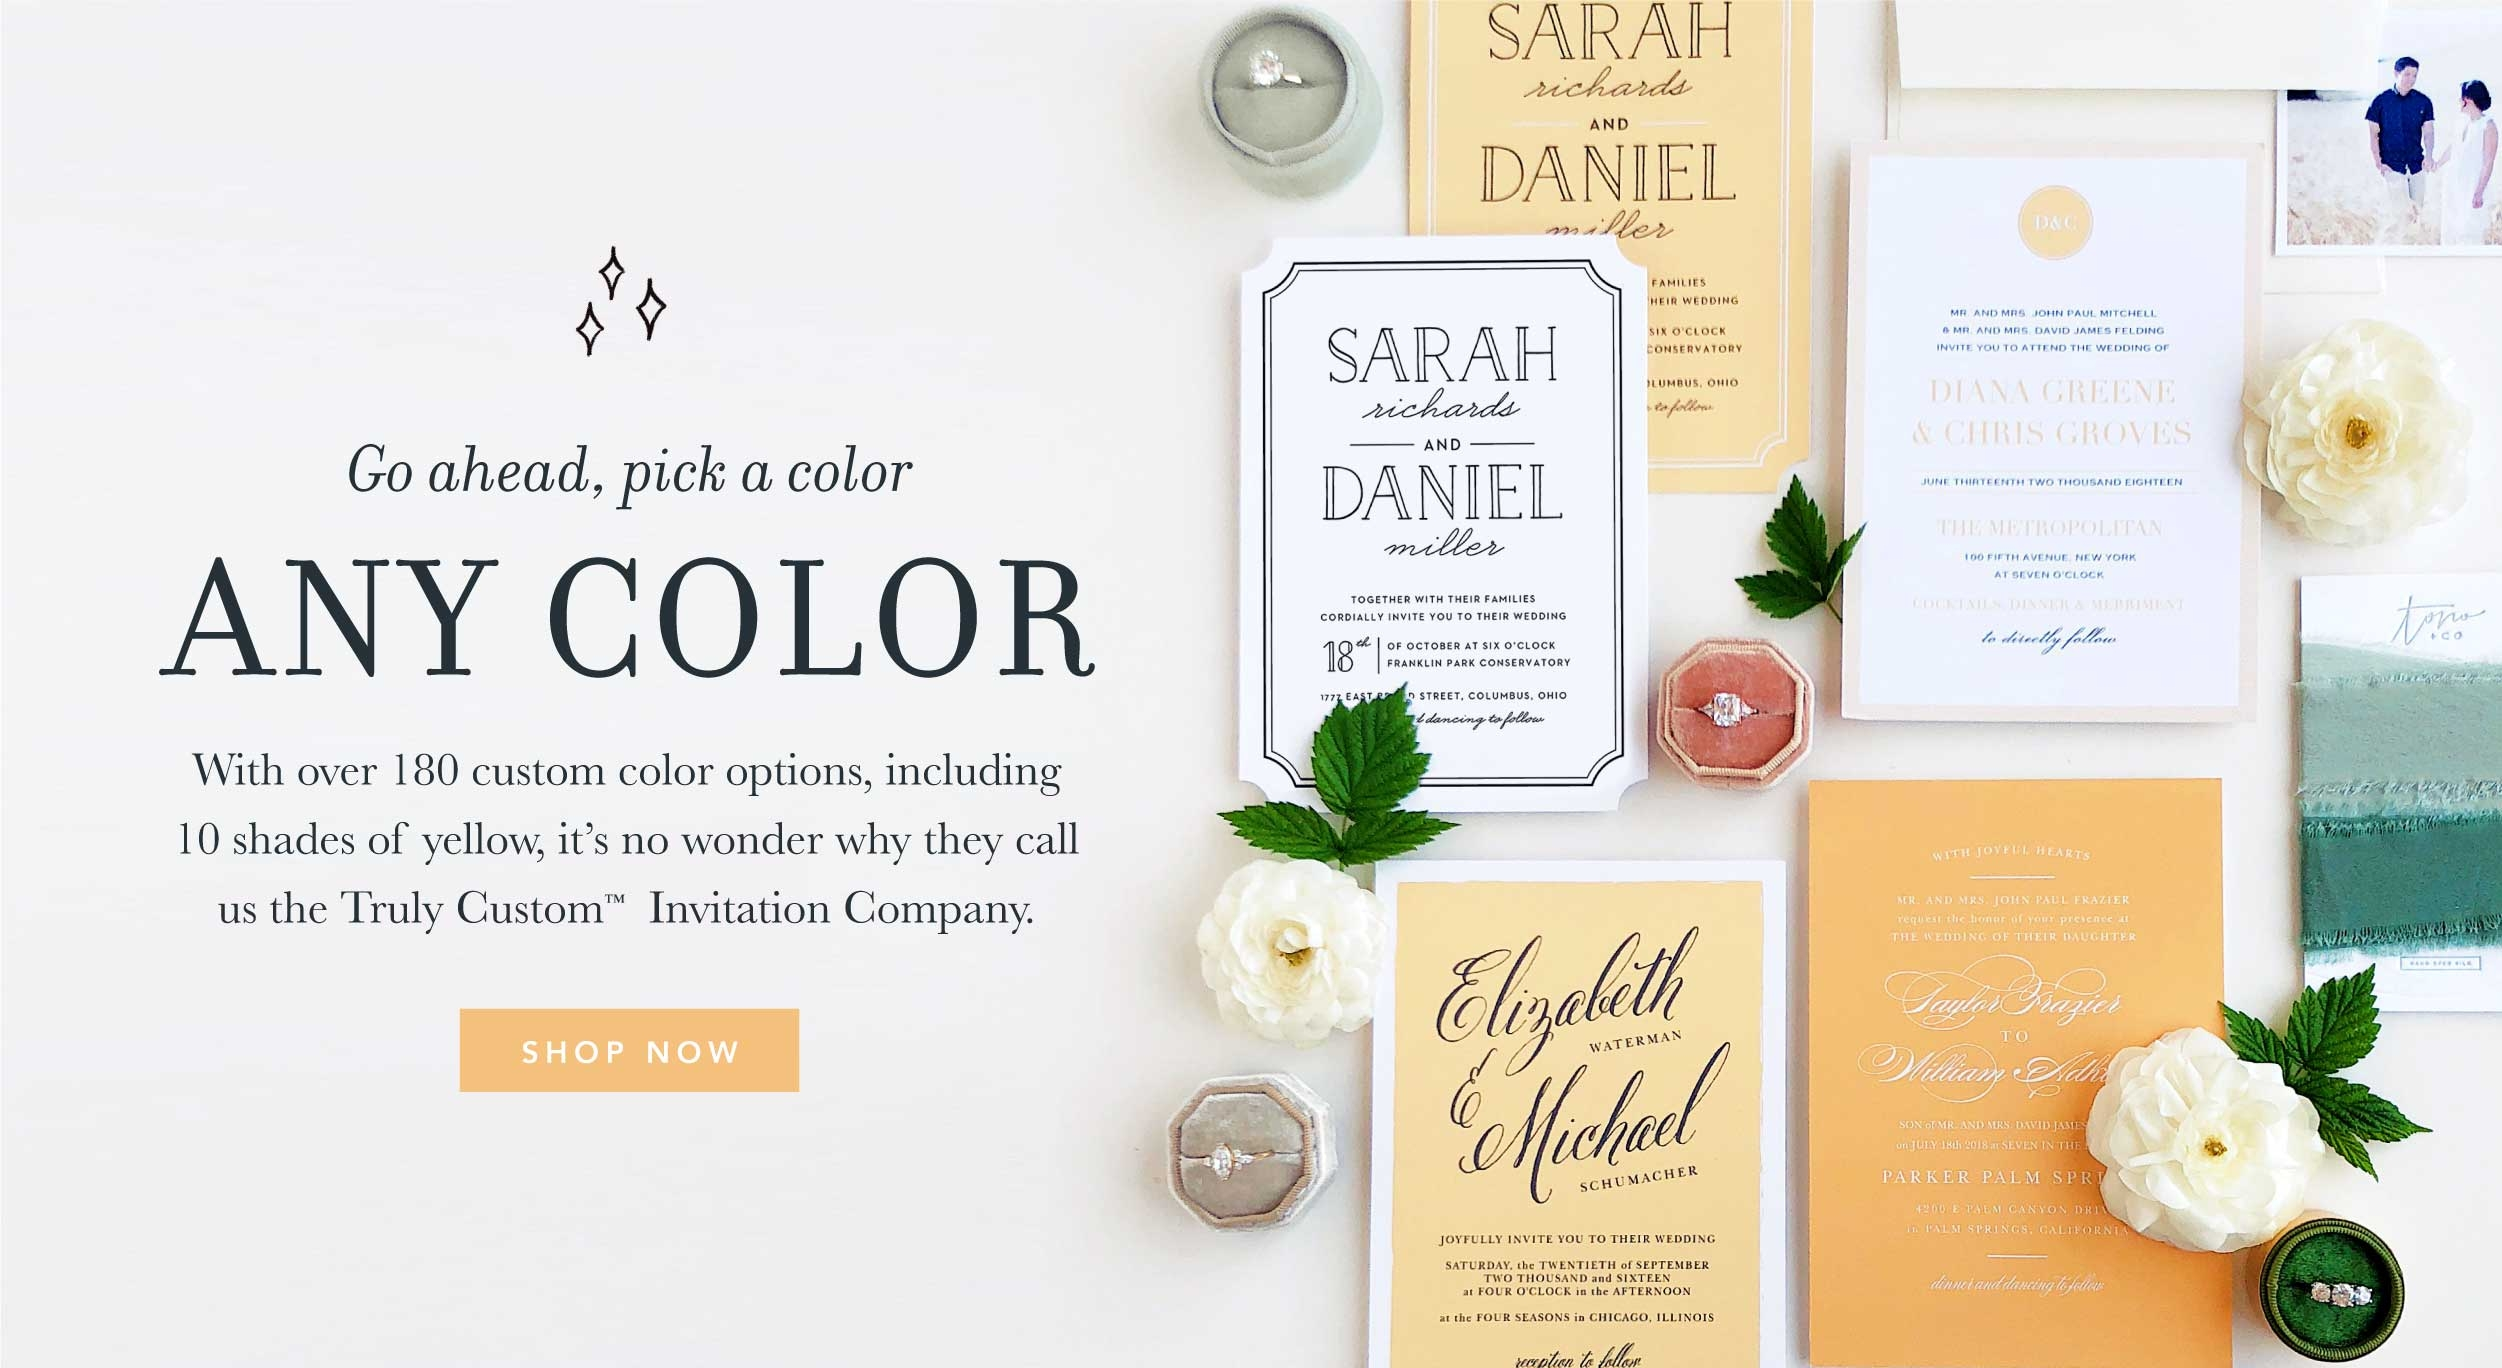 Go ahead, pick a color, any color. With over 180 custom color options, including 10 shades of yellow, it's no wonder why they call us the Truly Custom™ Invitation Company.